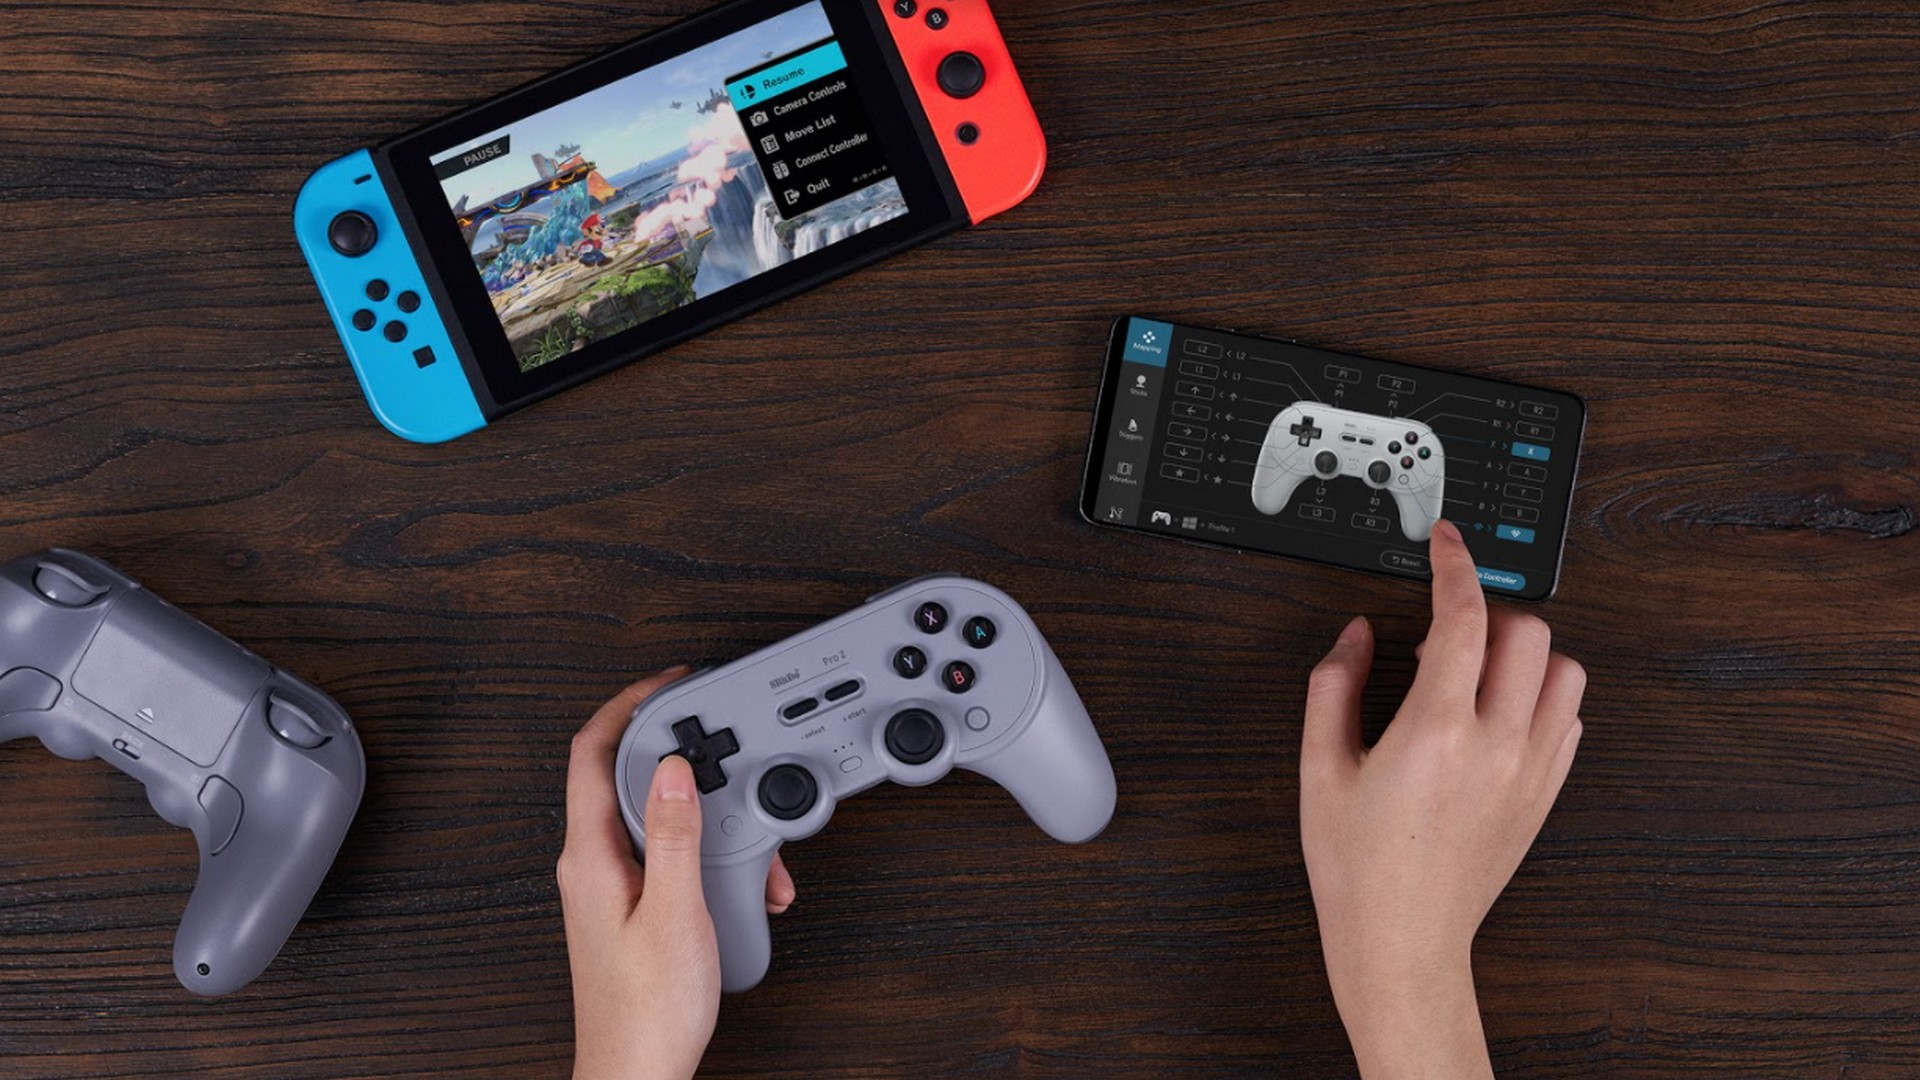 8BitDo Appoints Bluemouth As ANZ Distributor & Launches New SN30 Pro 2 Controller